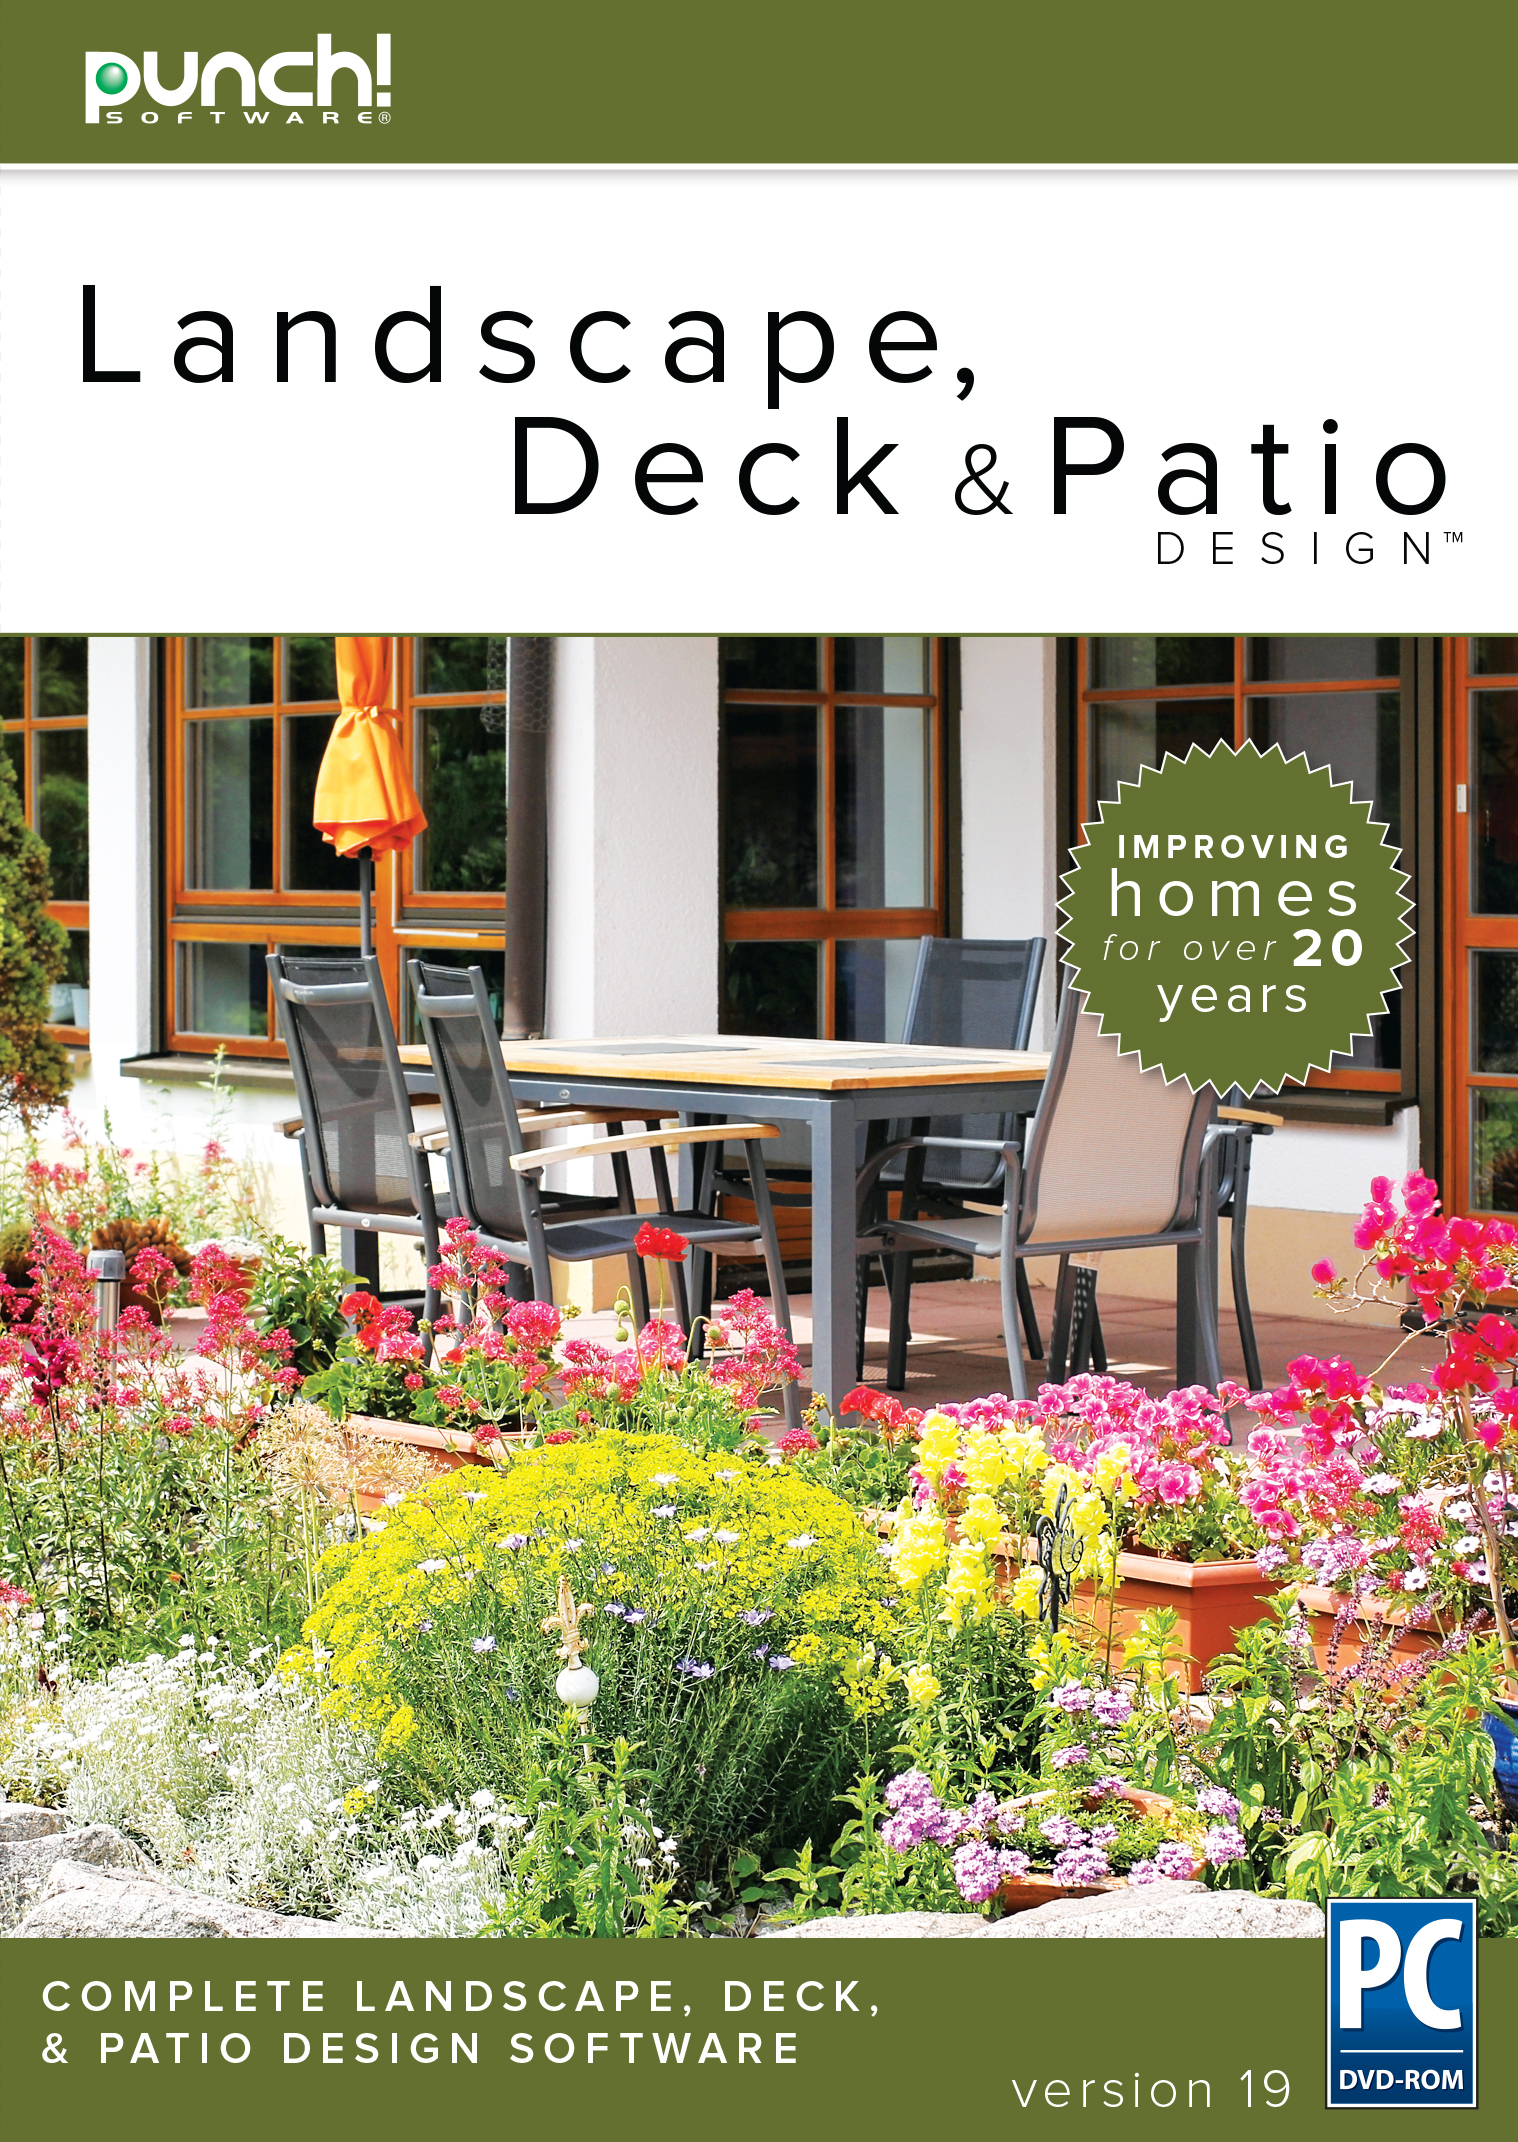 Delicieux Landscape, Deck And Patio Design V19 For Windows PC [Download]: Software